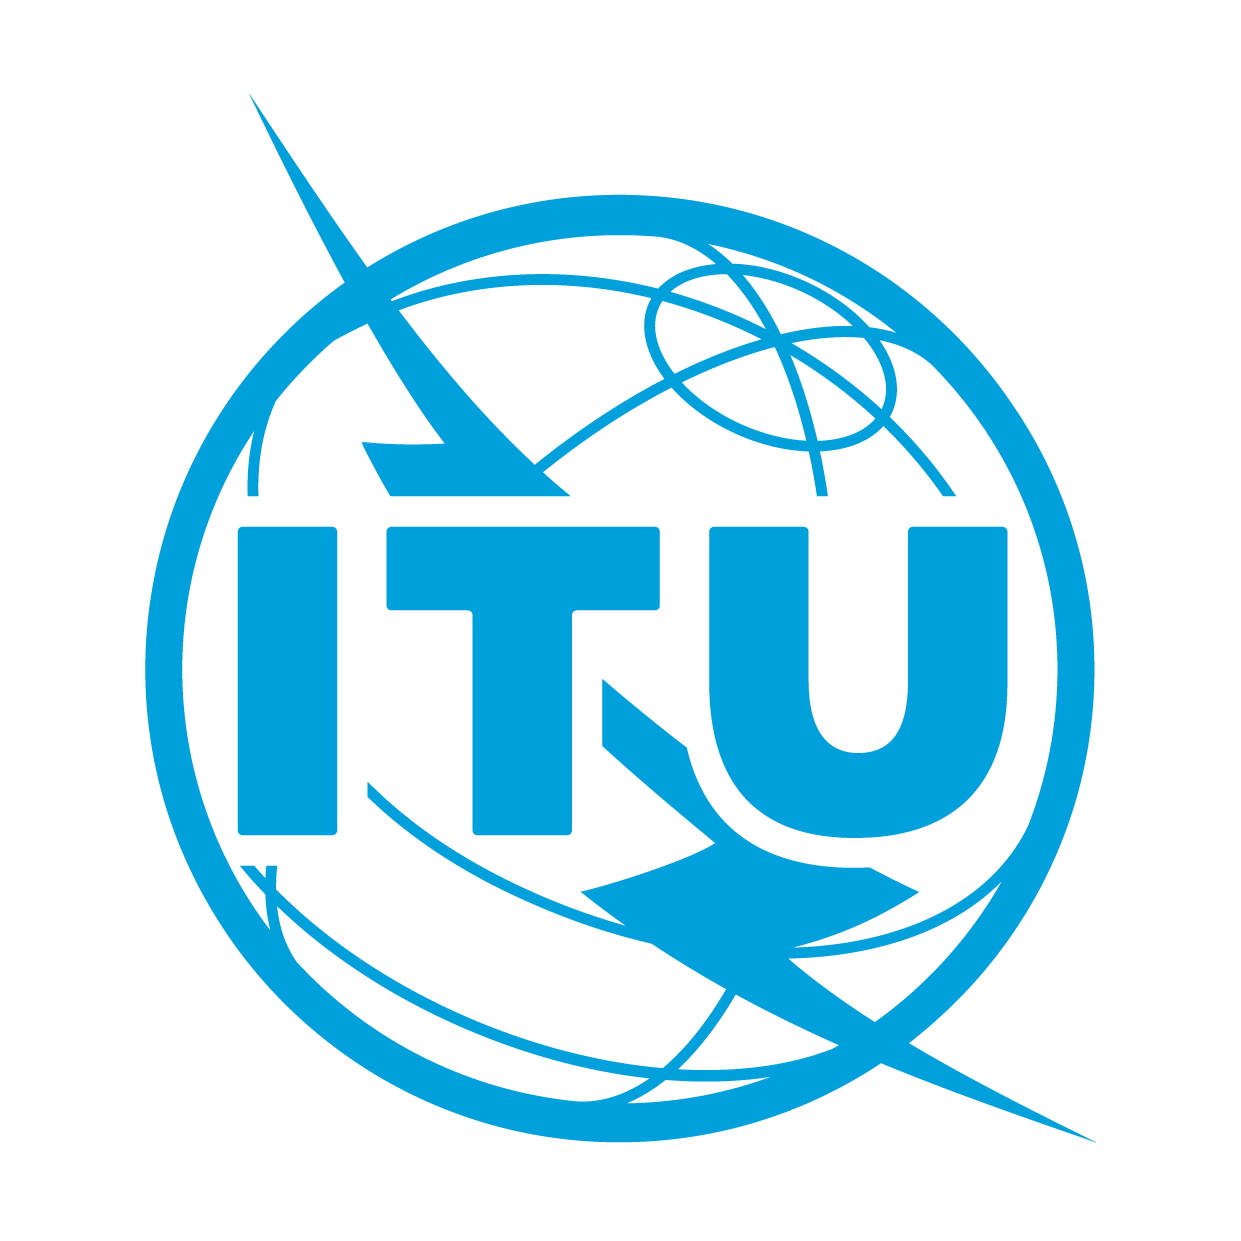 ITU official logo-blue.png